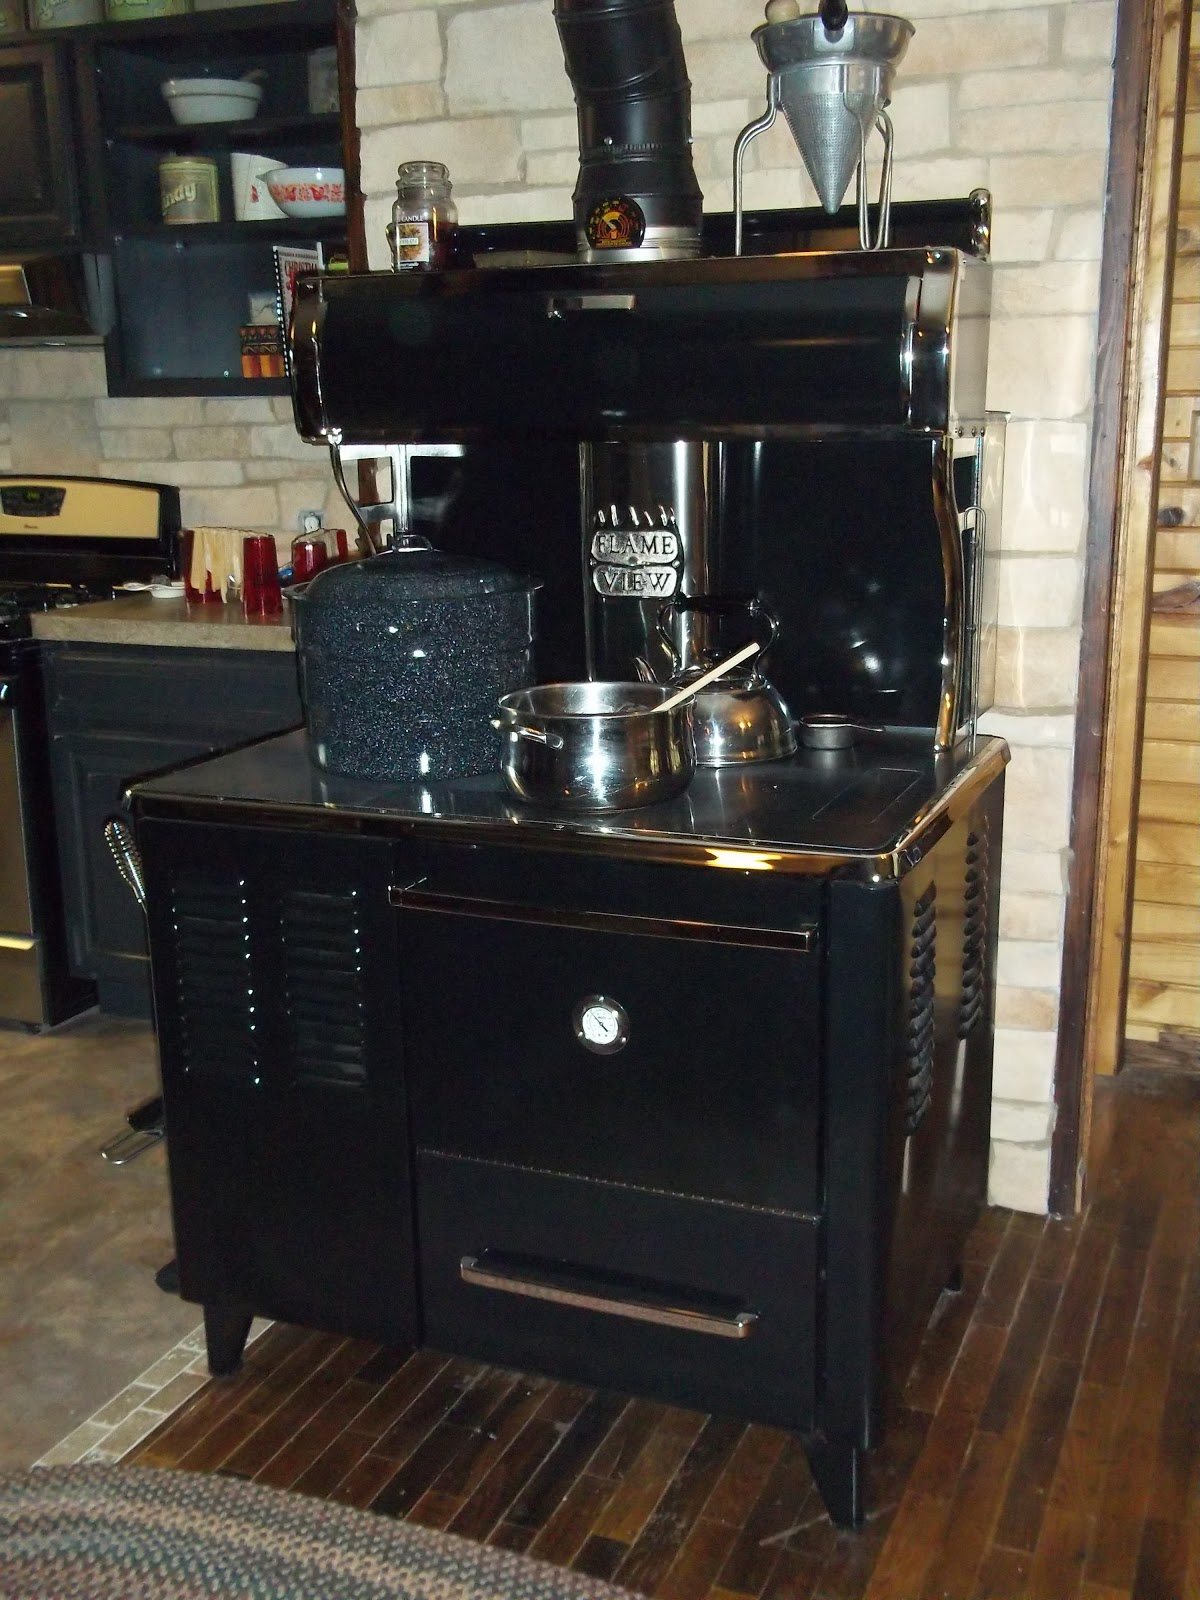 Wood Burning Kitchen Stove WB Designs - Wood Burning Cook Stoves For Sale Used WB Designs